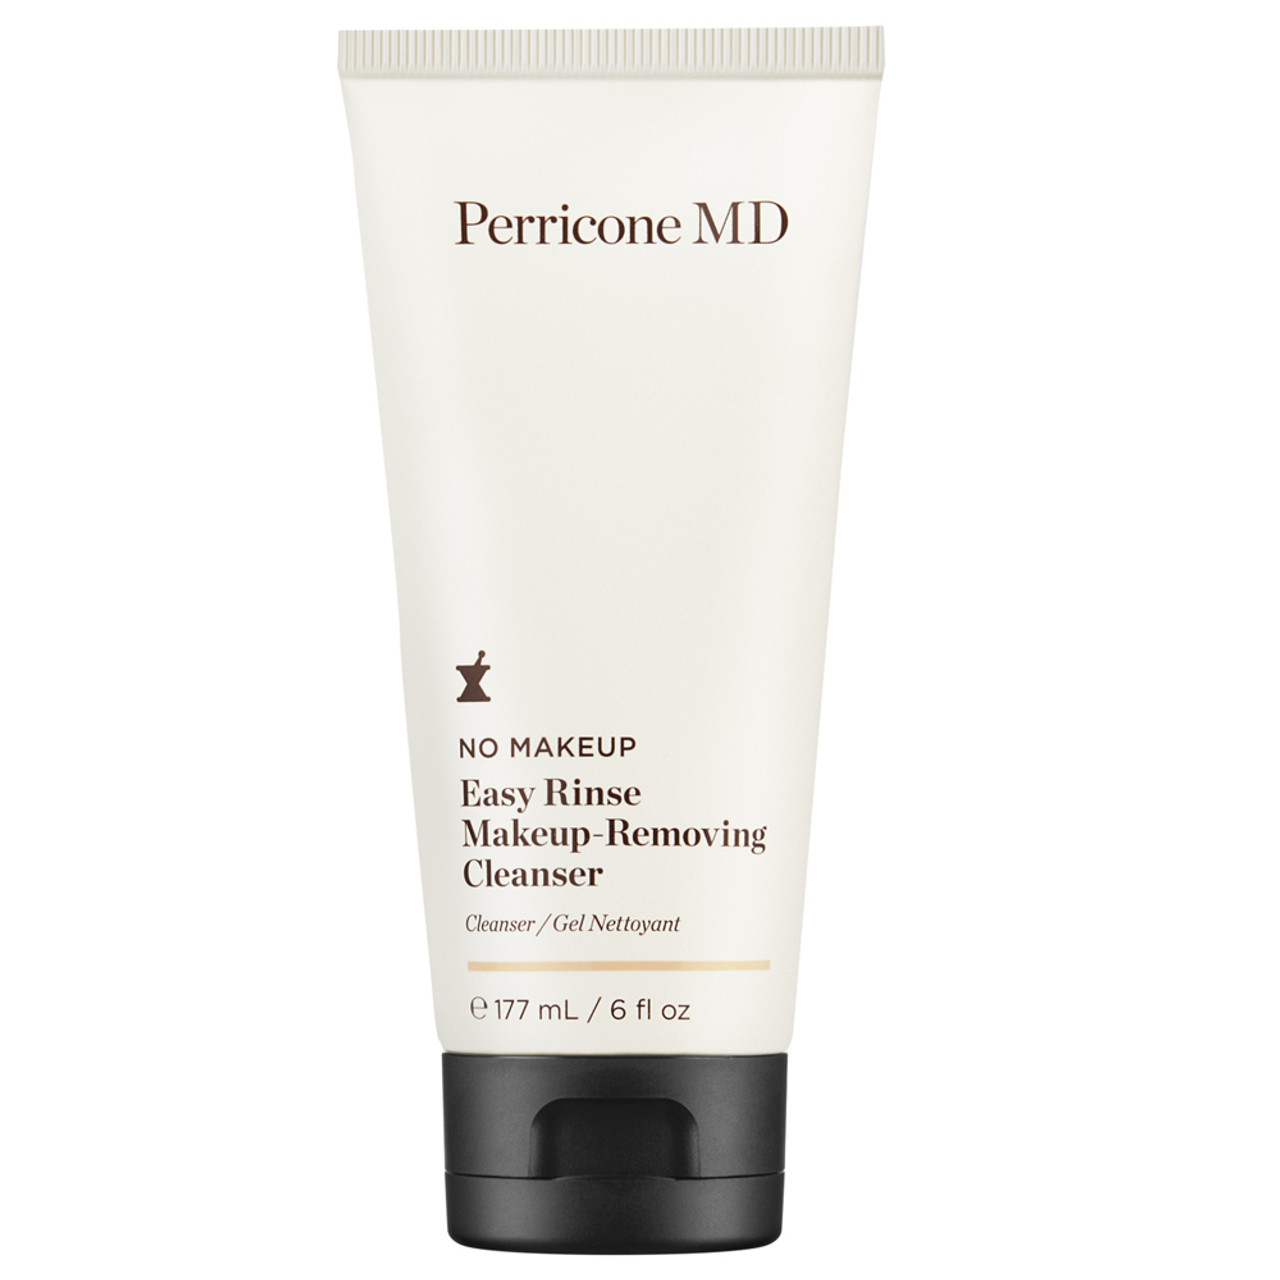 Perricone MD No Makeup Easy Rinse Makeup-Removing Cleanser